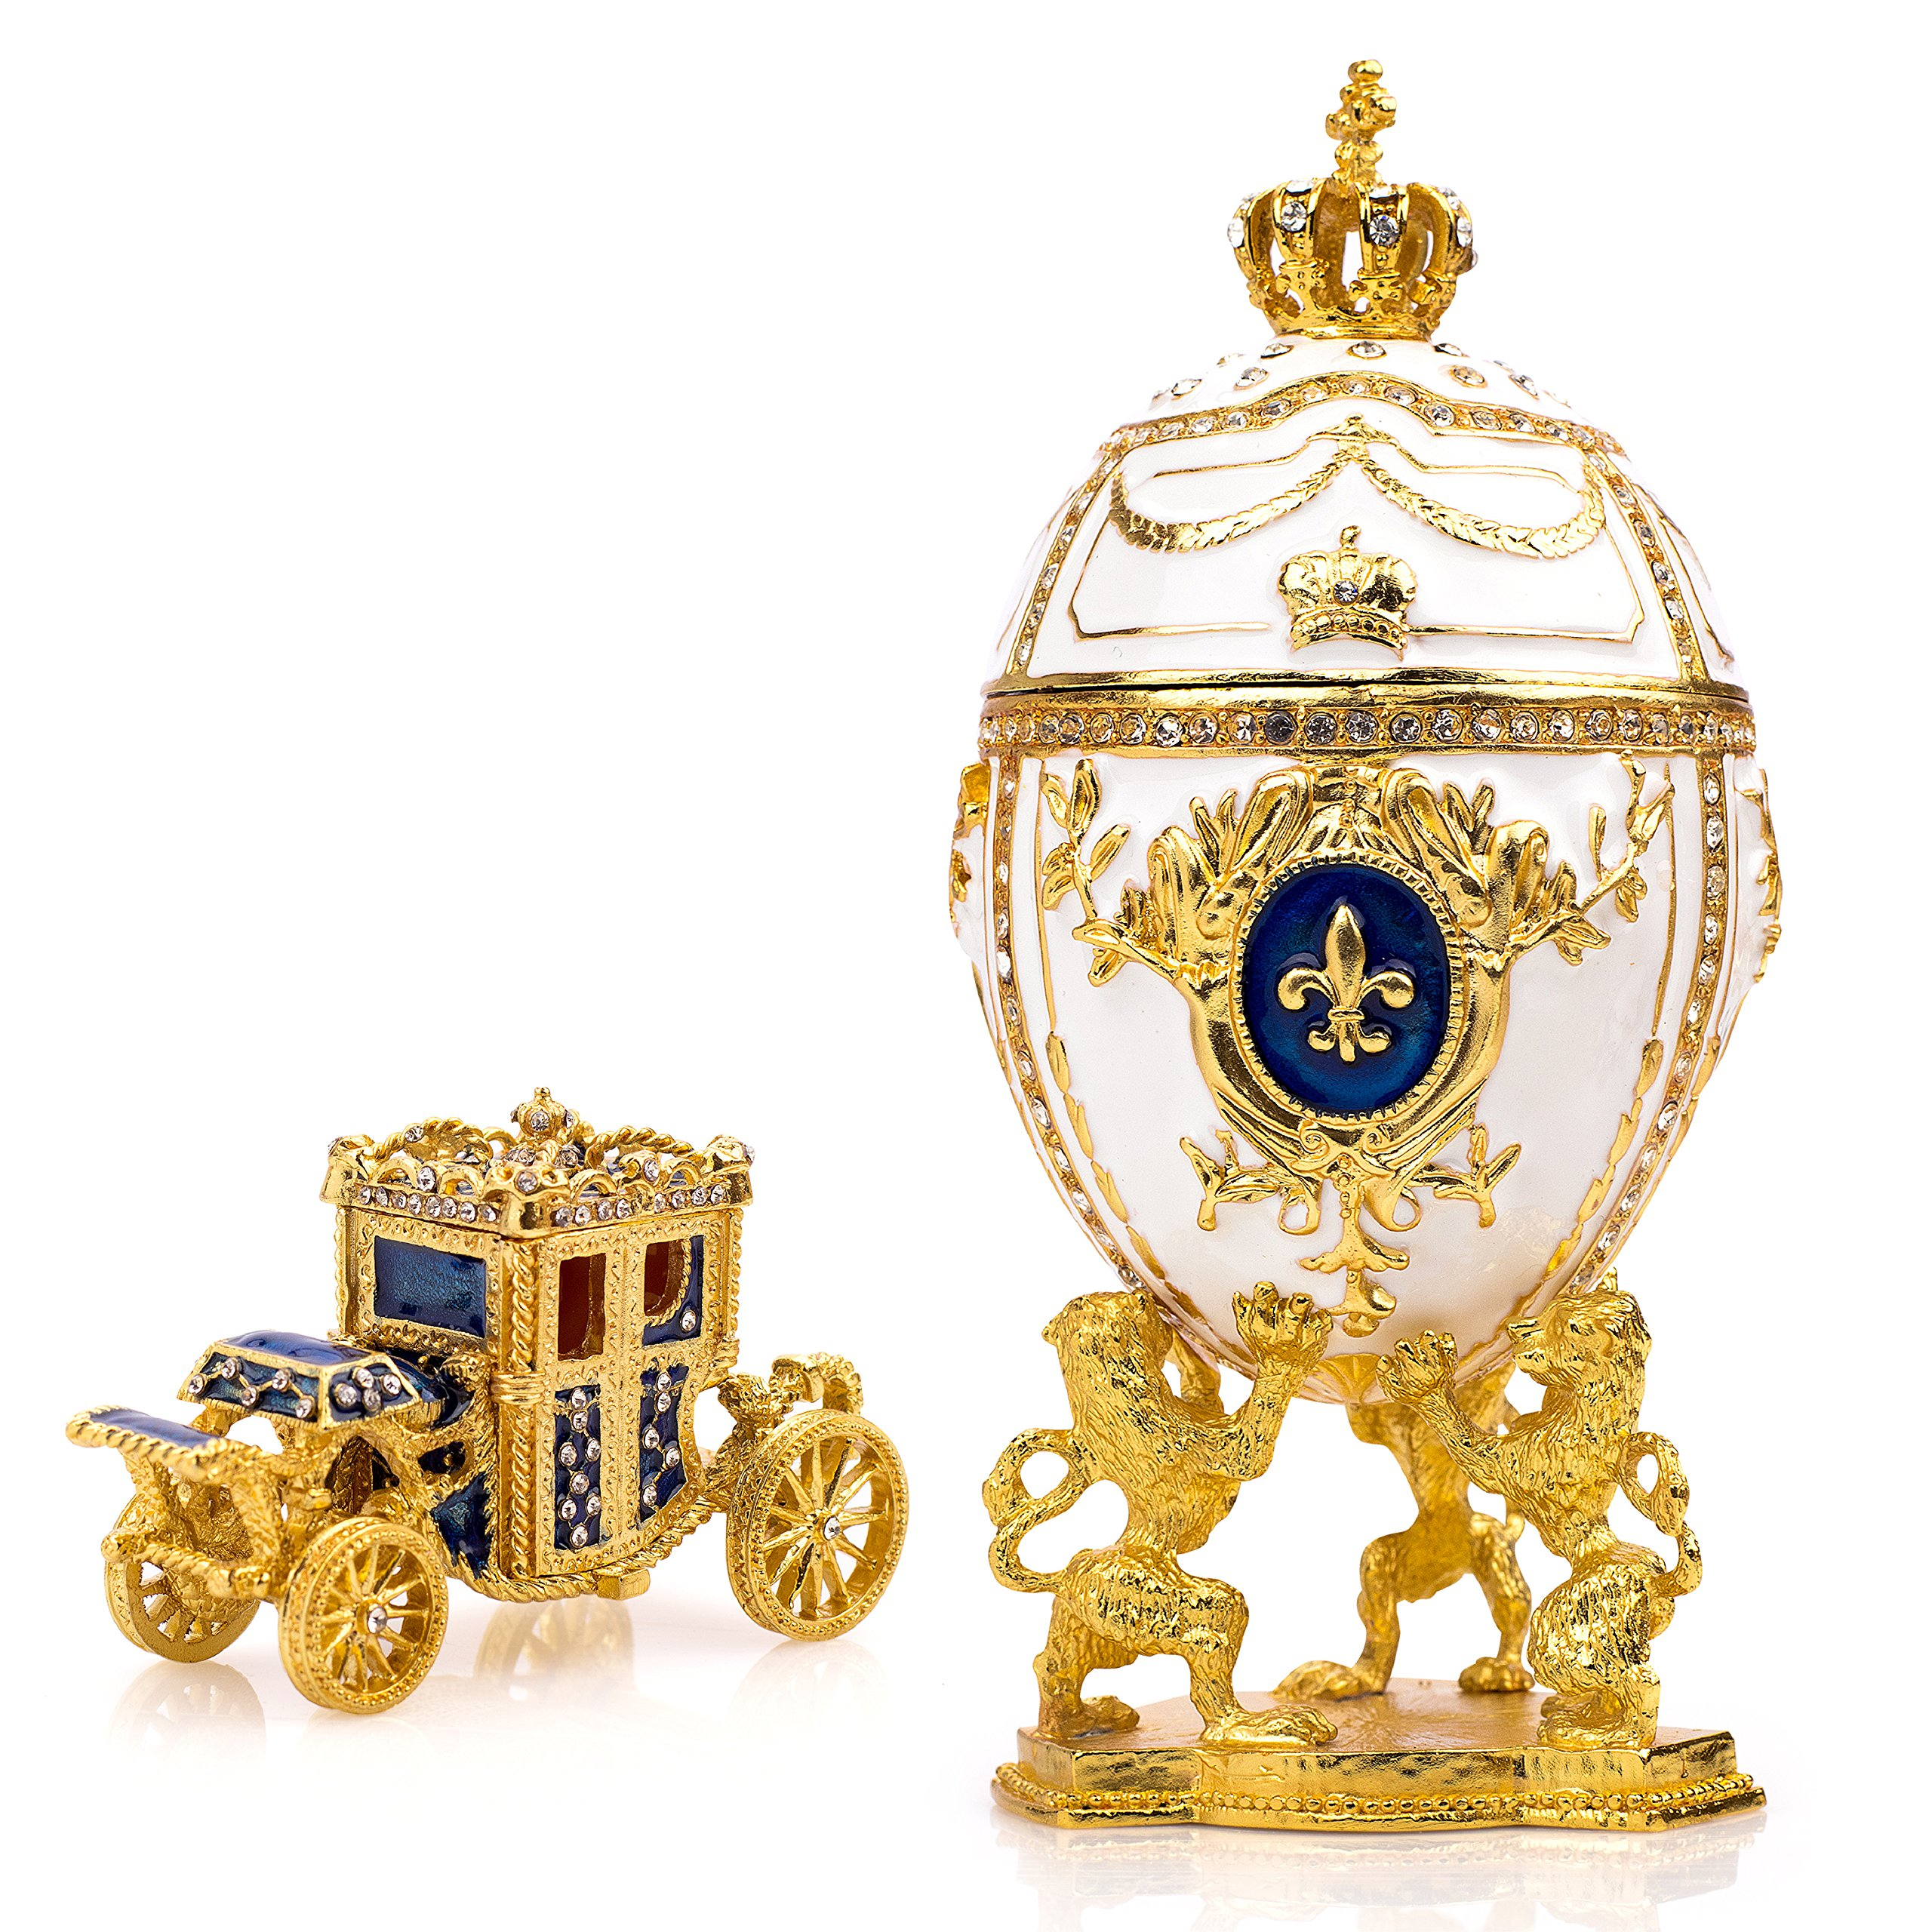 Unique, Decorative White Faberge Egg: Extra Large 6.6 inches, Hand Painted Jewelry Box for The Ultimate Home Décor, Comes with Gift Faberge Carriage, Store Your Rings, Earrings and Jewelry in Style by Hydro Gizmos